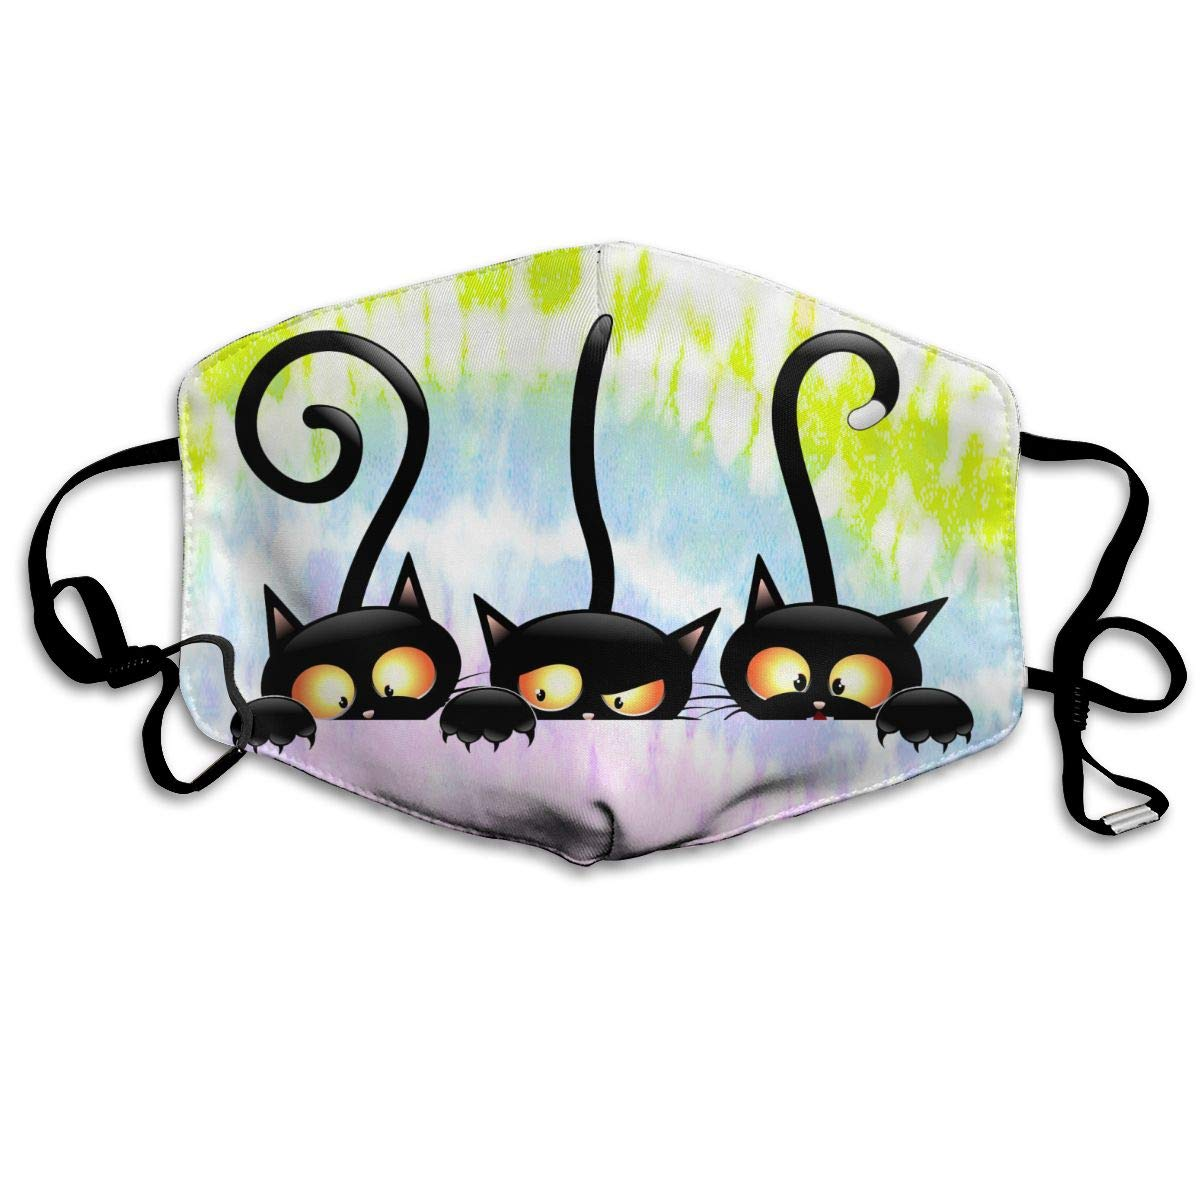 Witch Cat Washable Reusable   Mask, Cotton Anti Dust Half Face Mouth Mask For Kids Teens Men Women With Adjustable Ear Loops